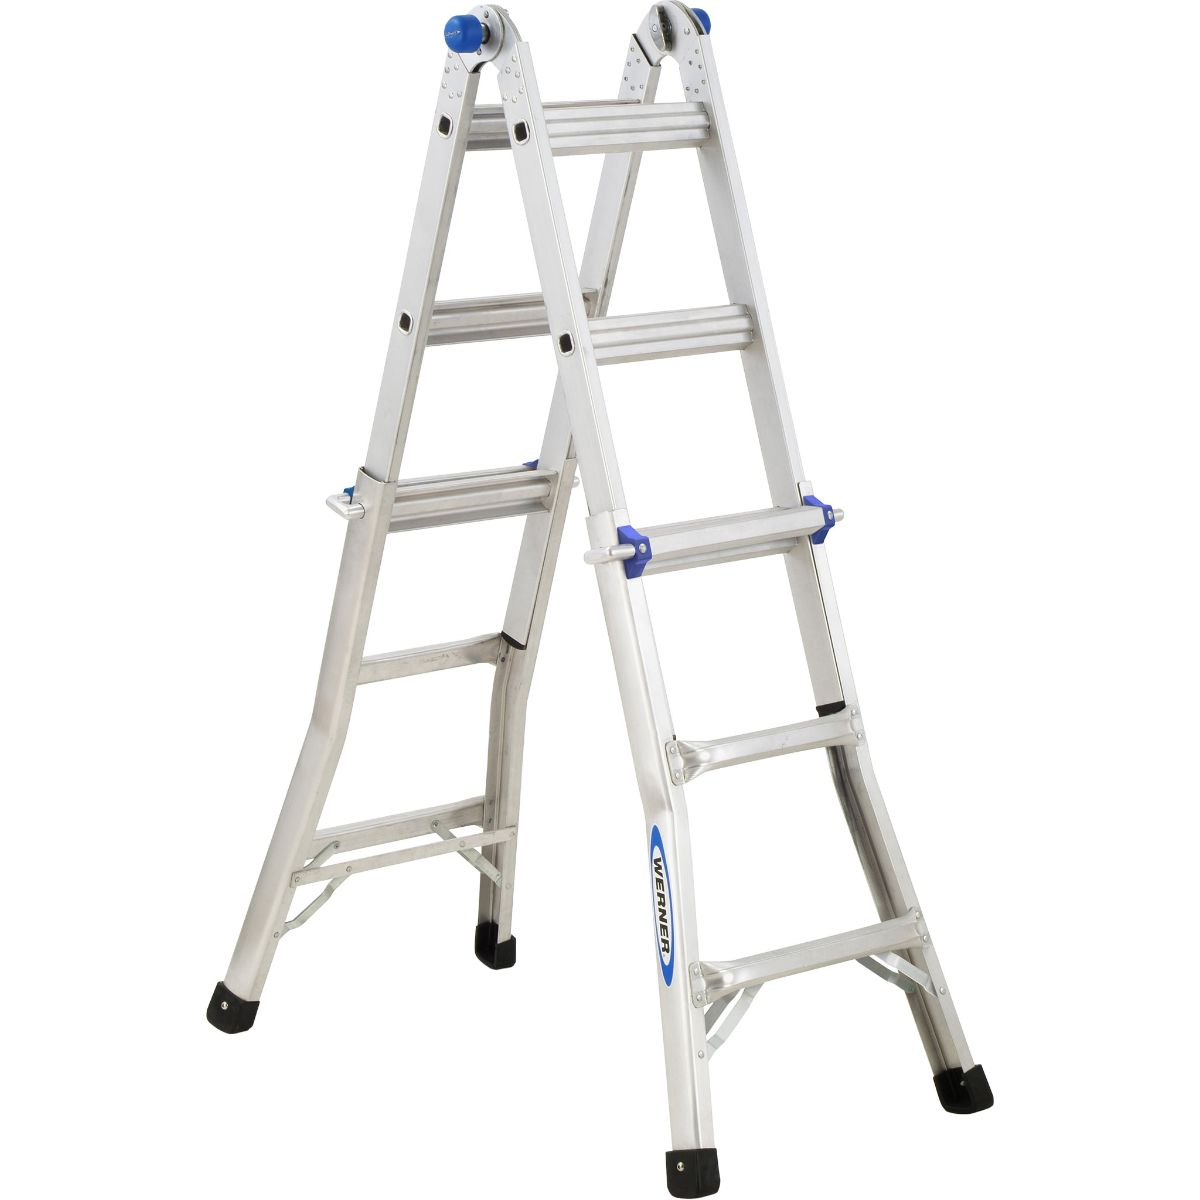 Mobile Scaffolding and Ladders Trinidad on The Building Source